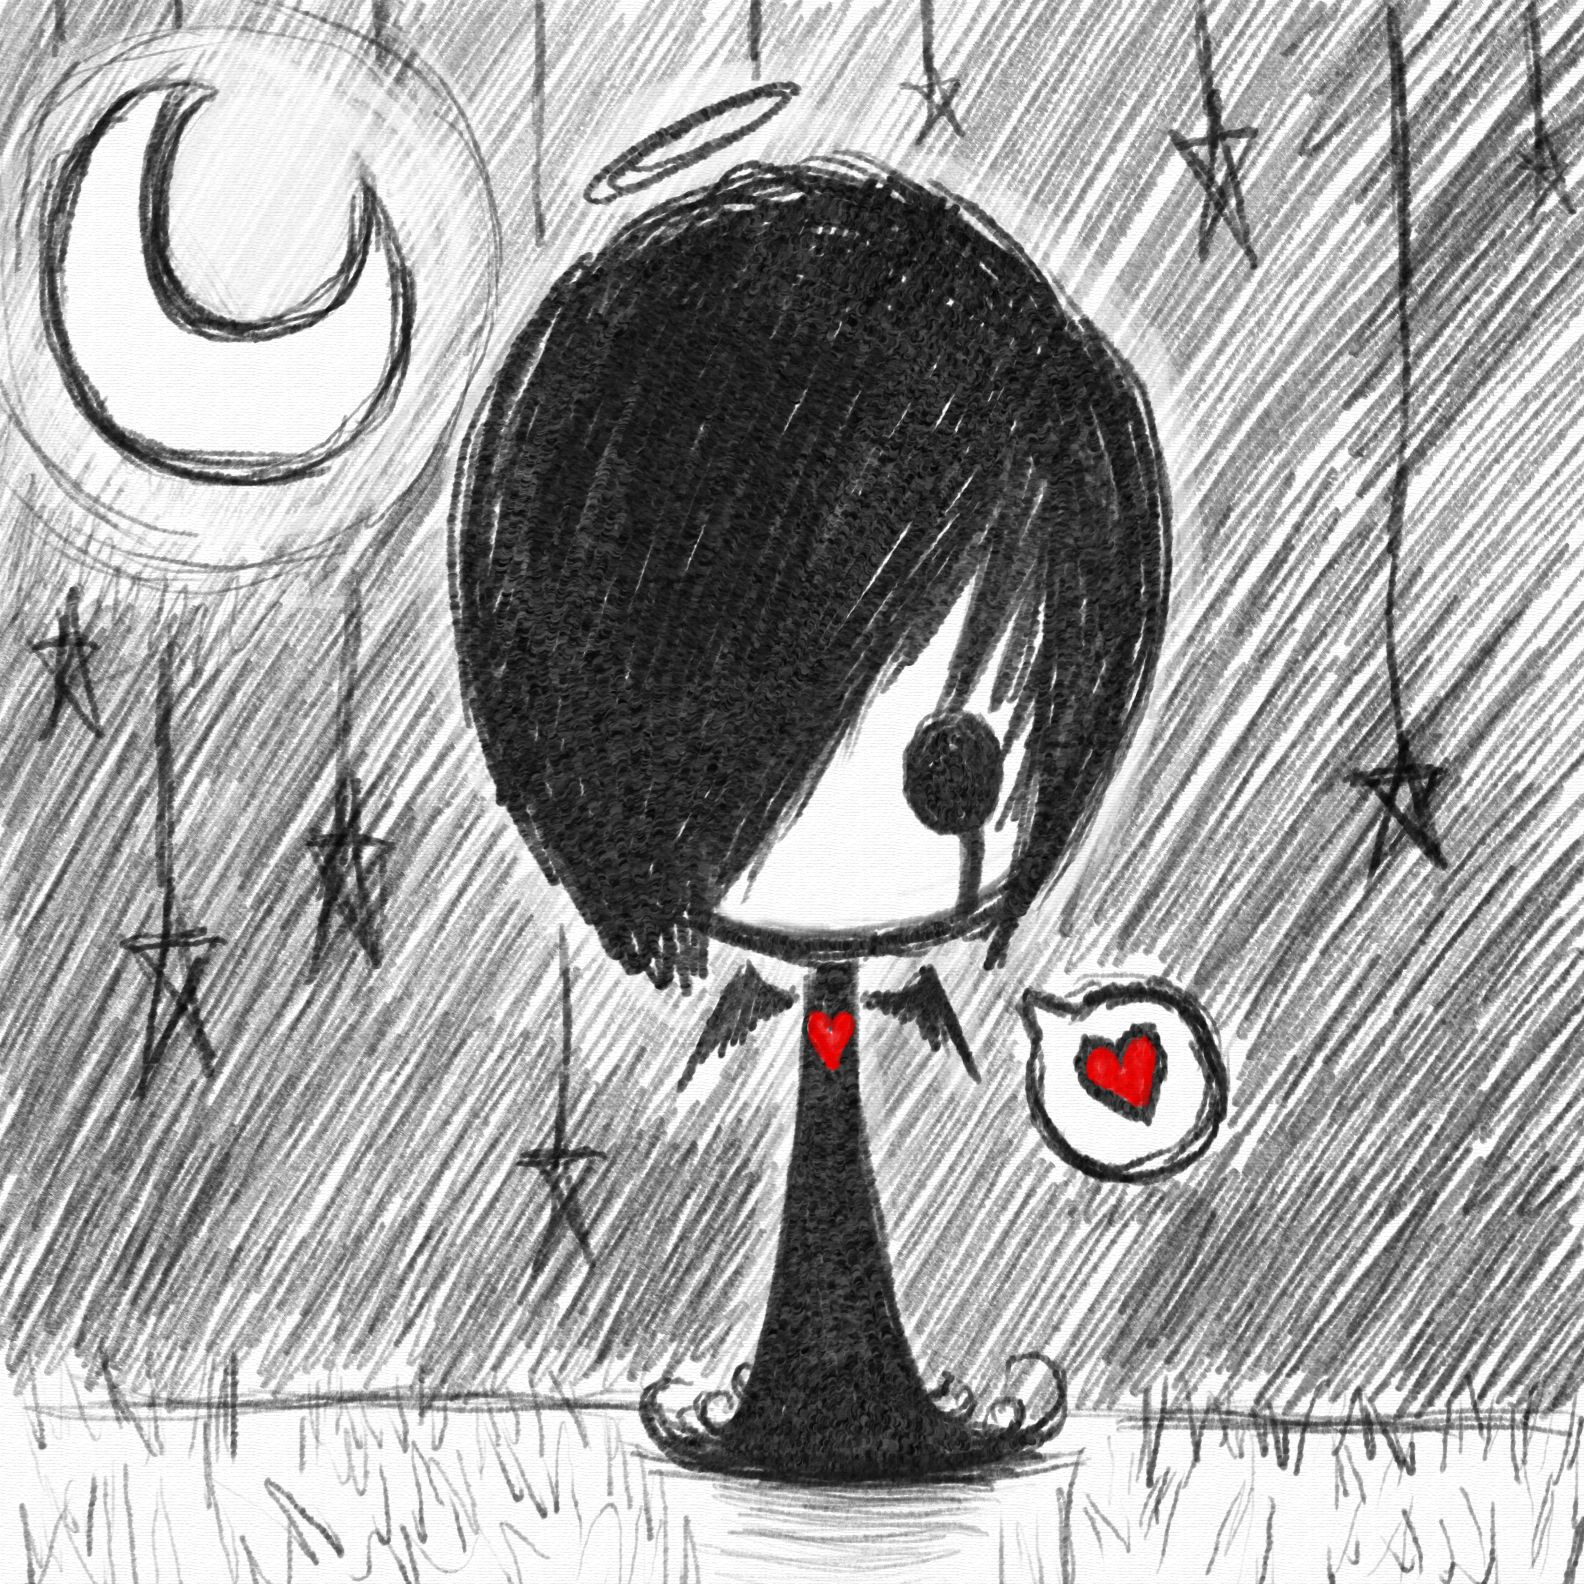 Emo drawings searchmangobite image cute emo drawings